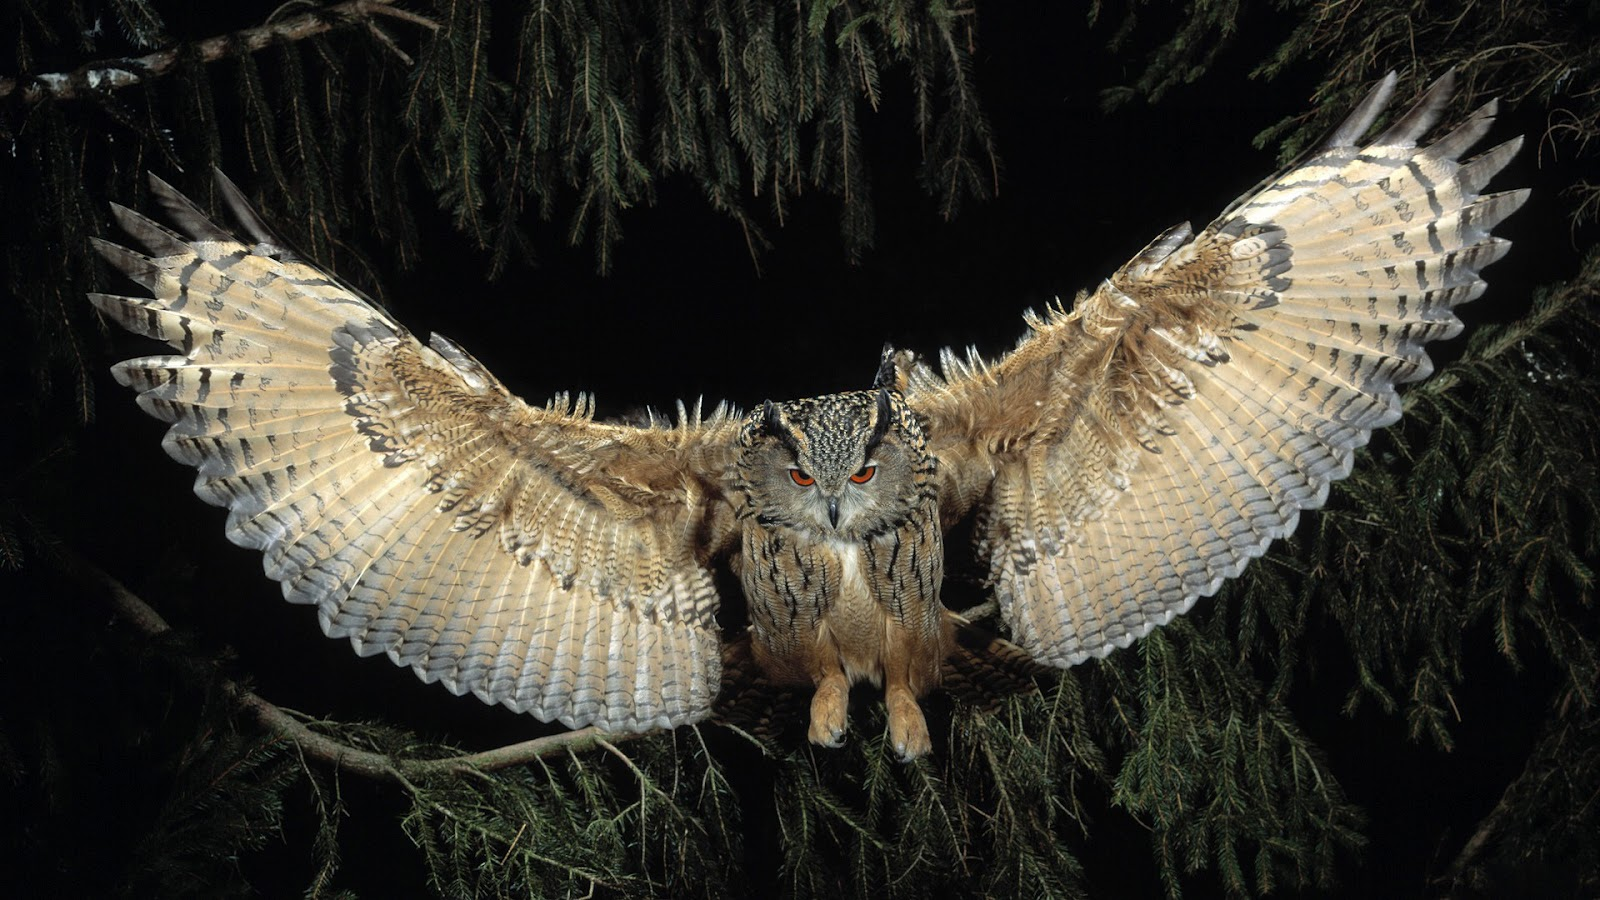 ... Owl Full HD... Owl Desktop Wallpaper Hd